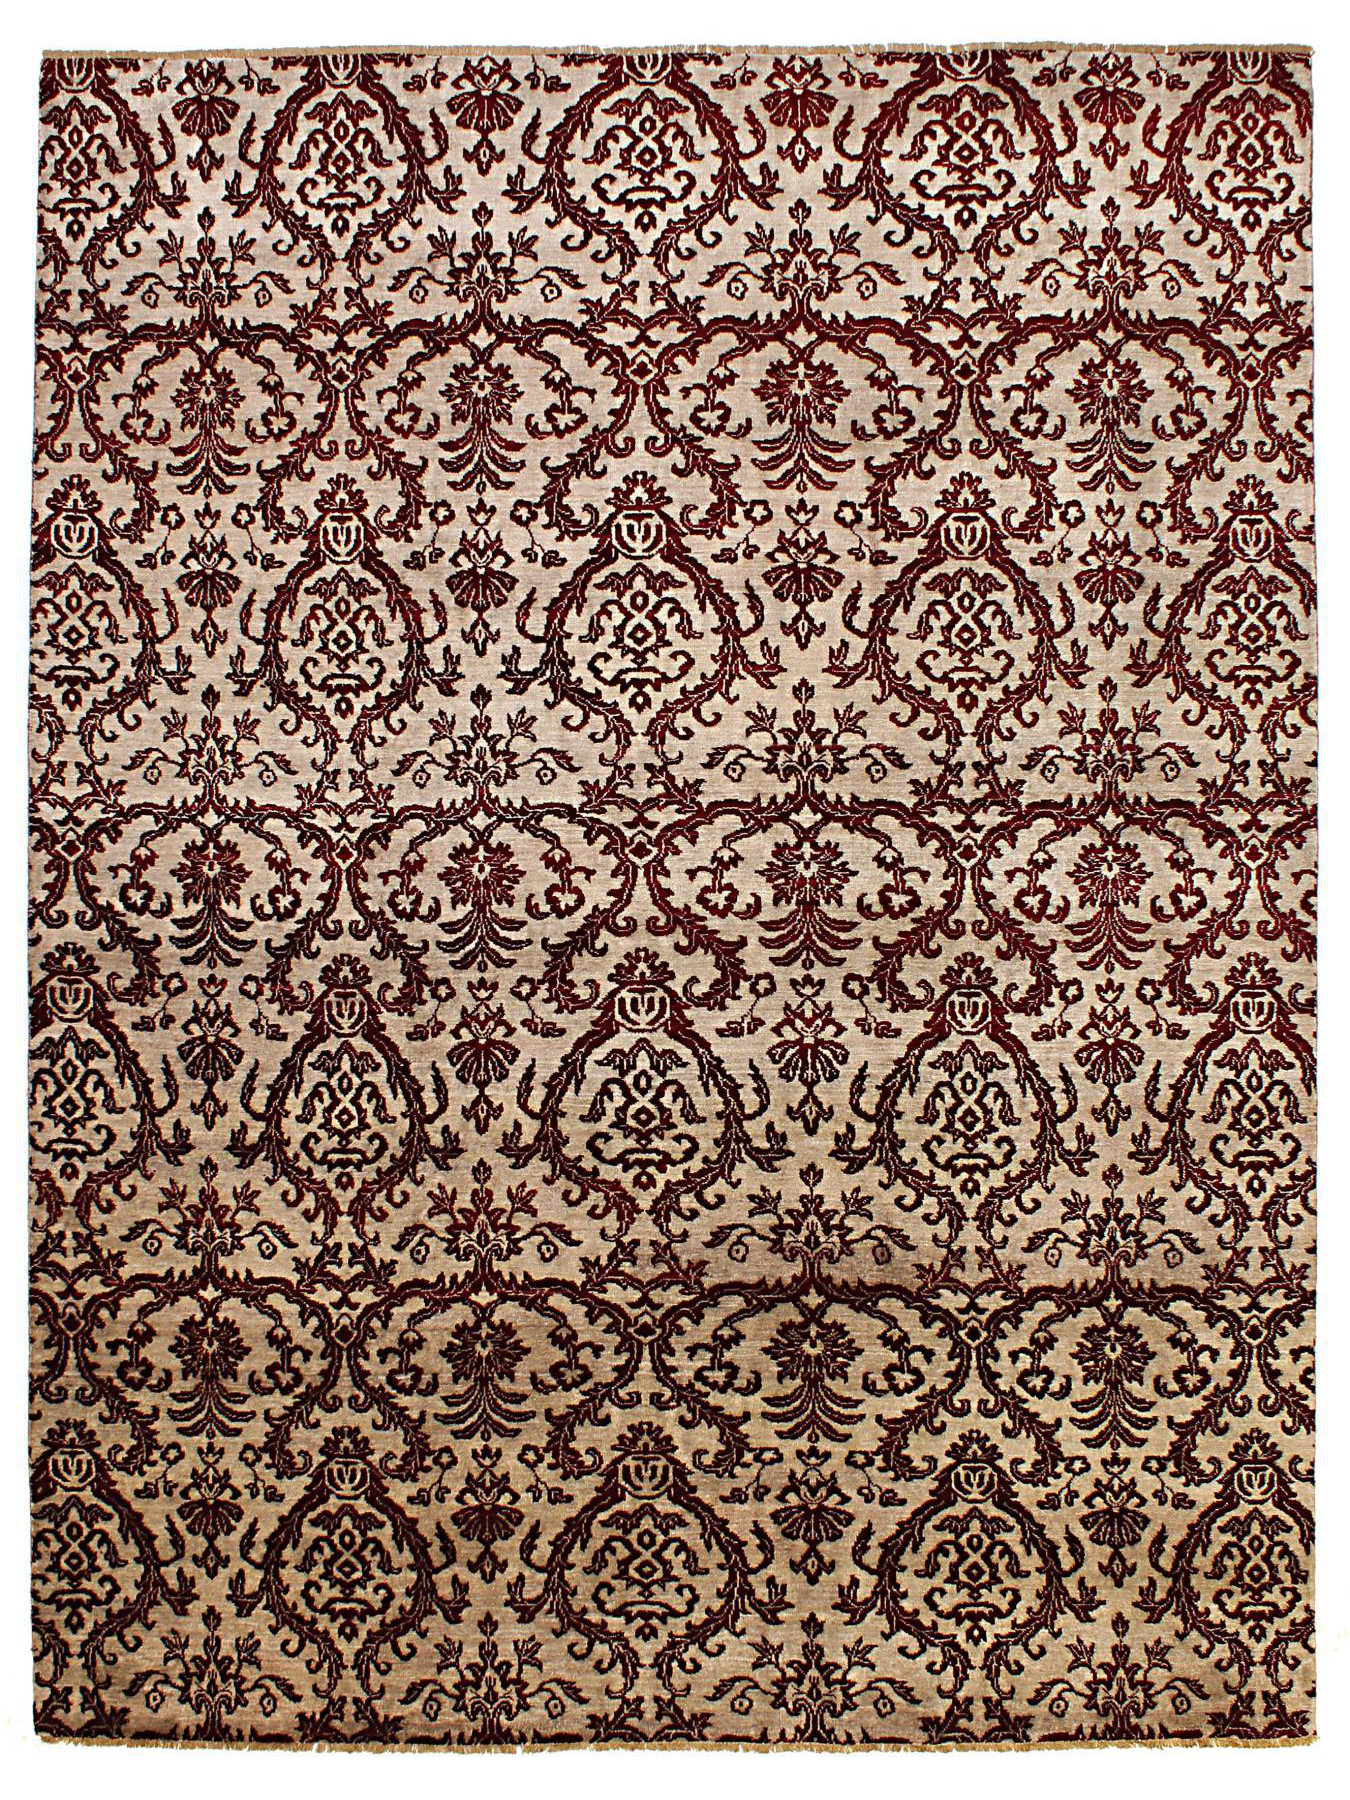 Luxury carpets - Damask-AL-6 B-34/F-1 Outlet